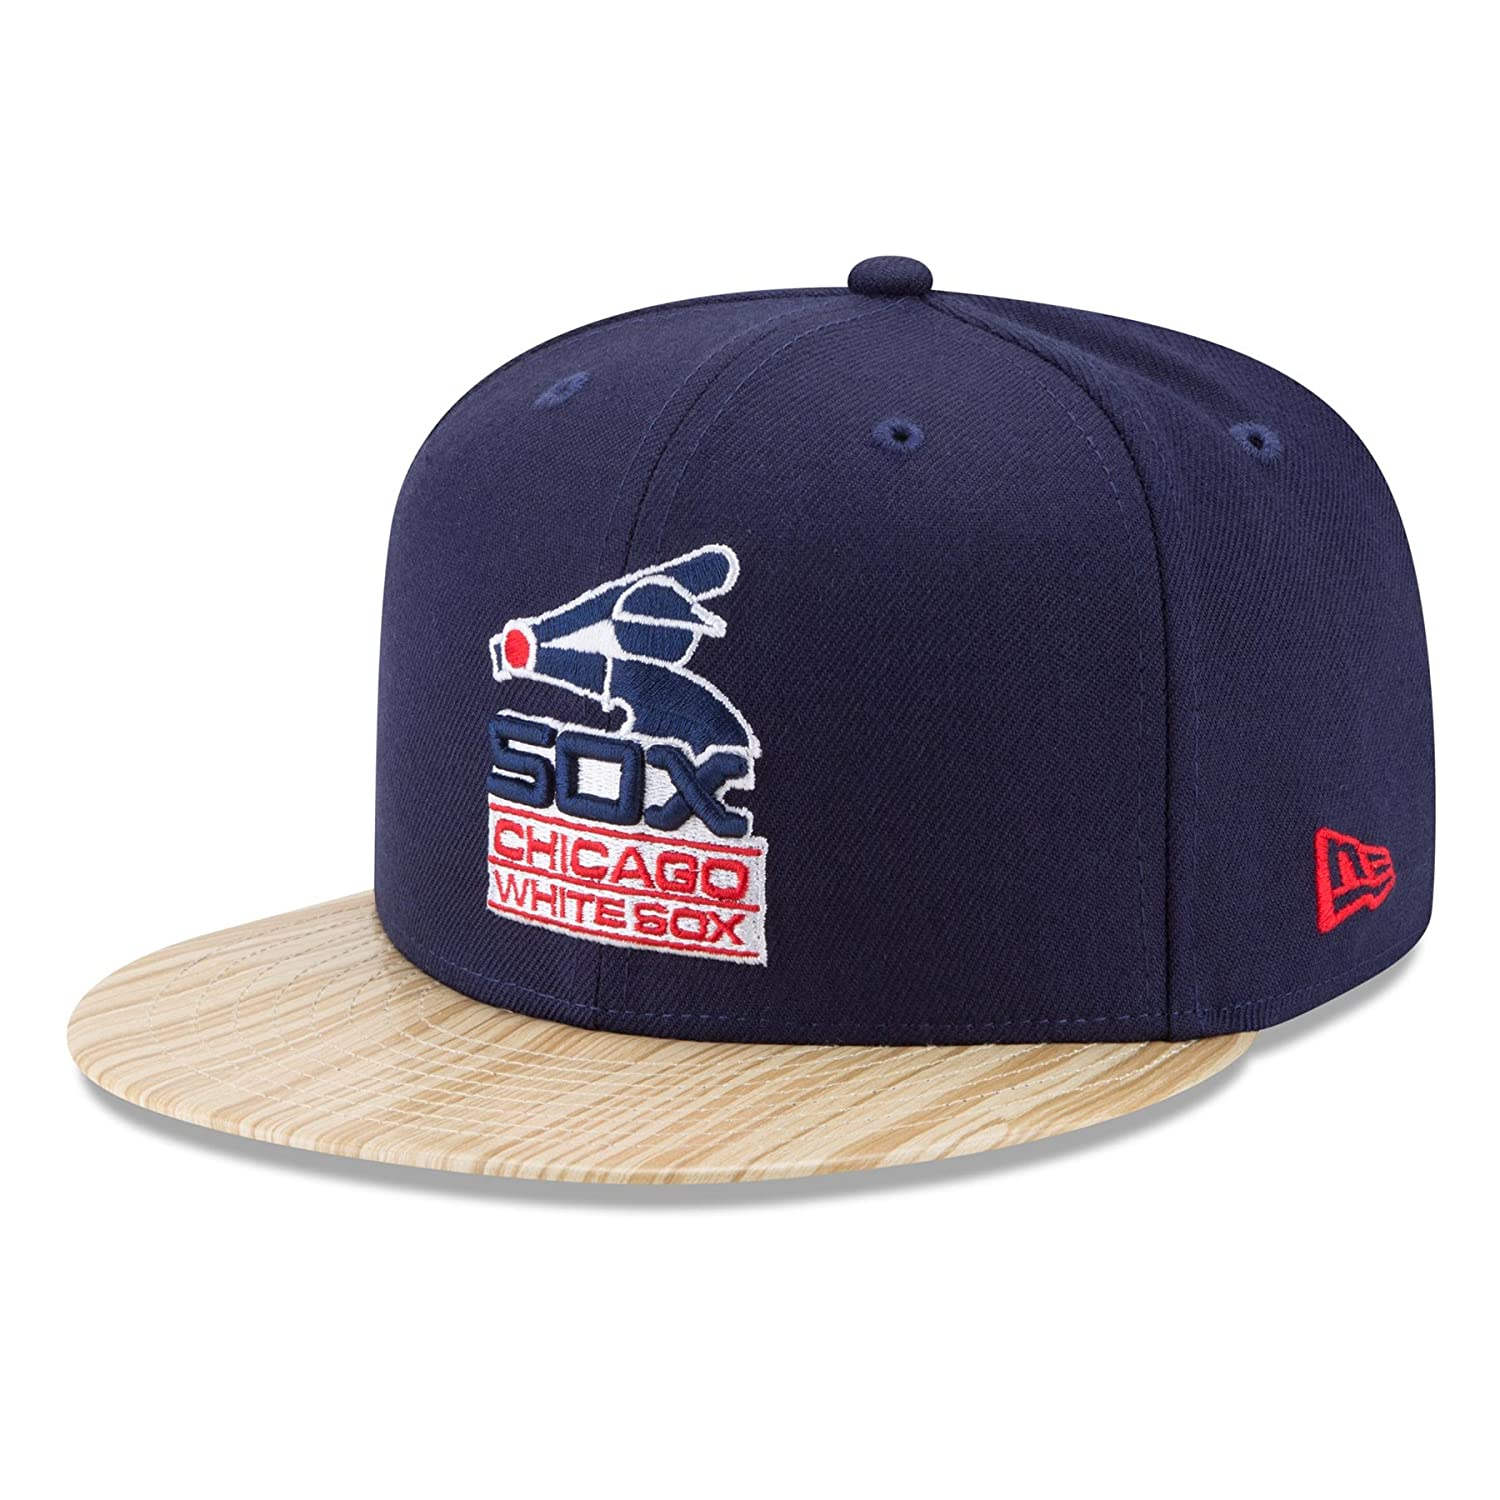 premium selection 00ca6 b4afd Amazon.com   New Era Chicago White Sox 9FIFTY MLB Cooperstown 1987 Topps  Snapback Hat   Sports   Outdoors